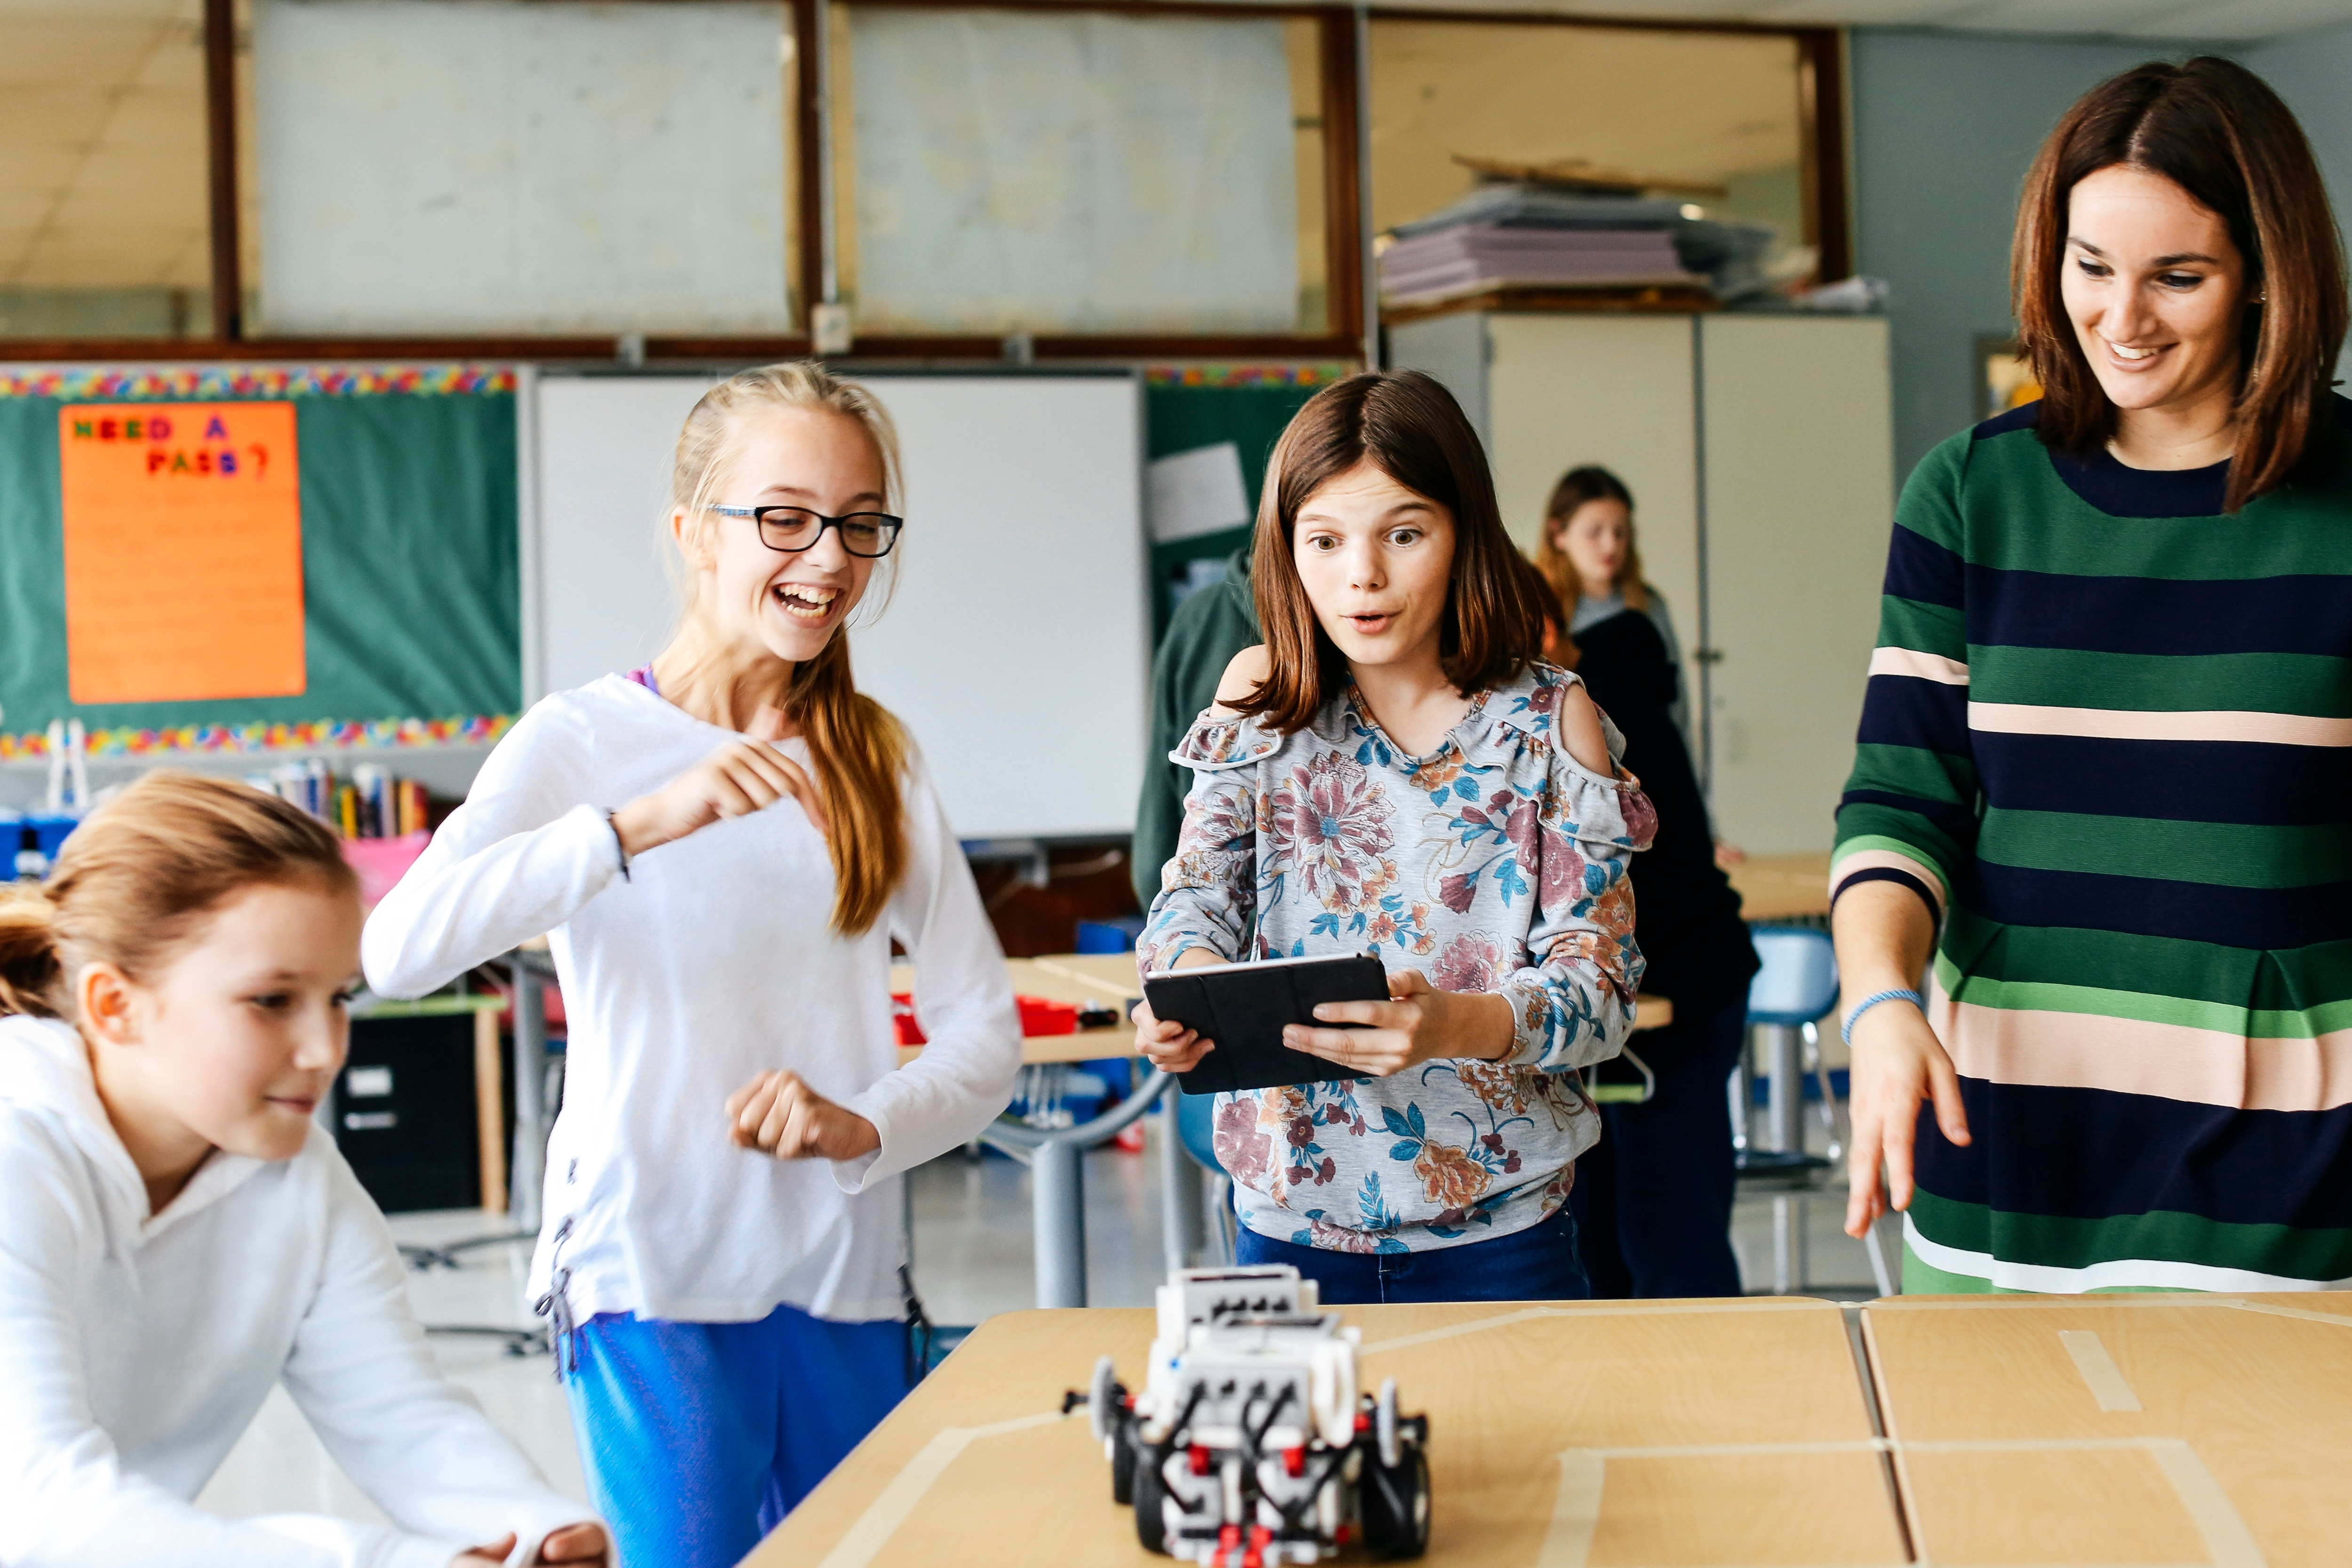 Three students and a teacher programming a LEGO Education MINDSTORMS EV3 robot